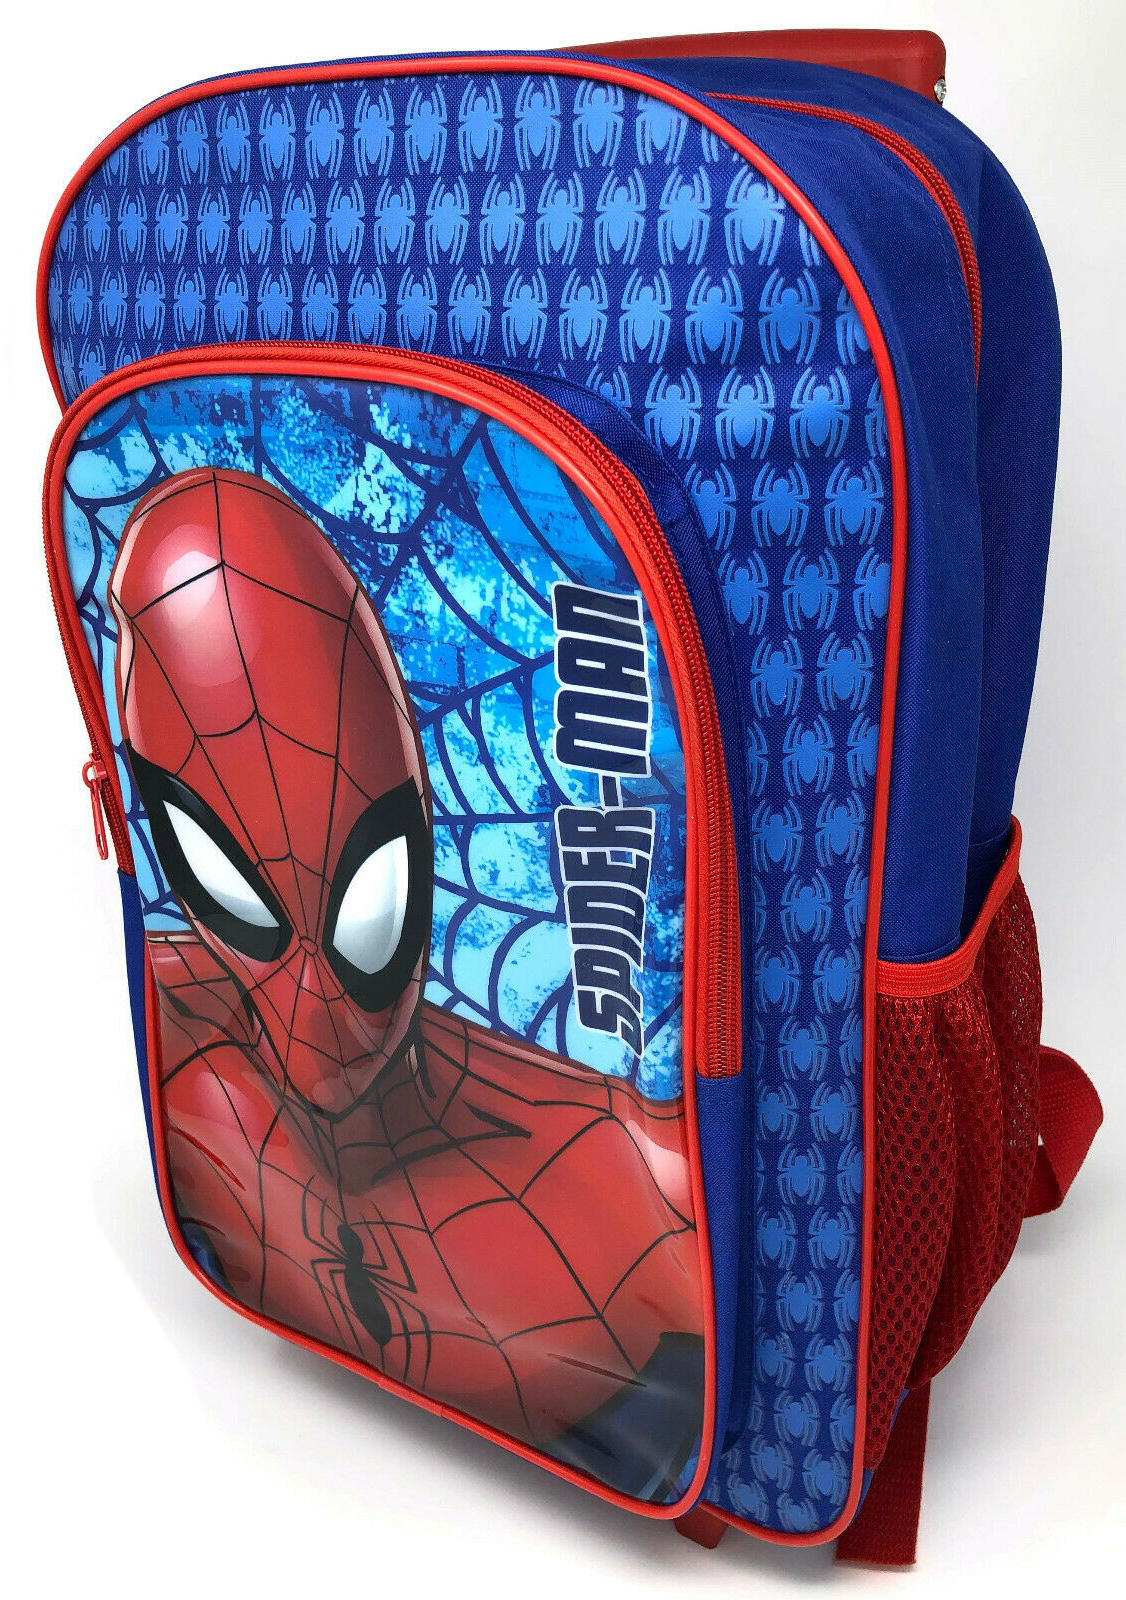 Spiderman Red & Blue Luggage Deluxe School Travel Trolley Roller Wheeled Bag